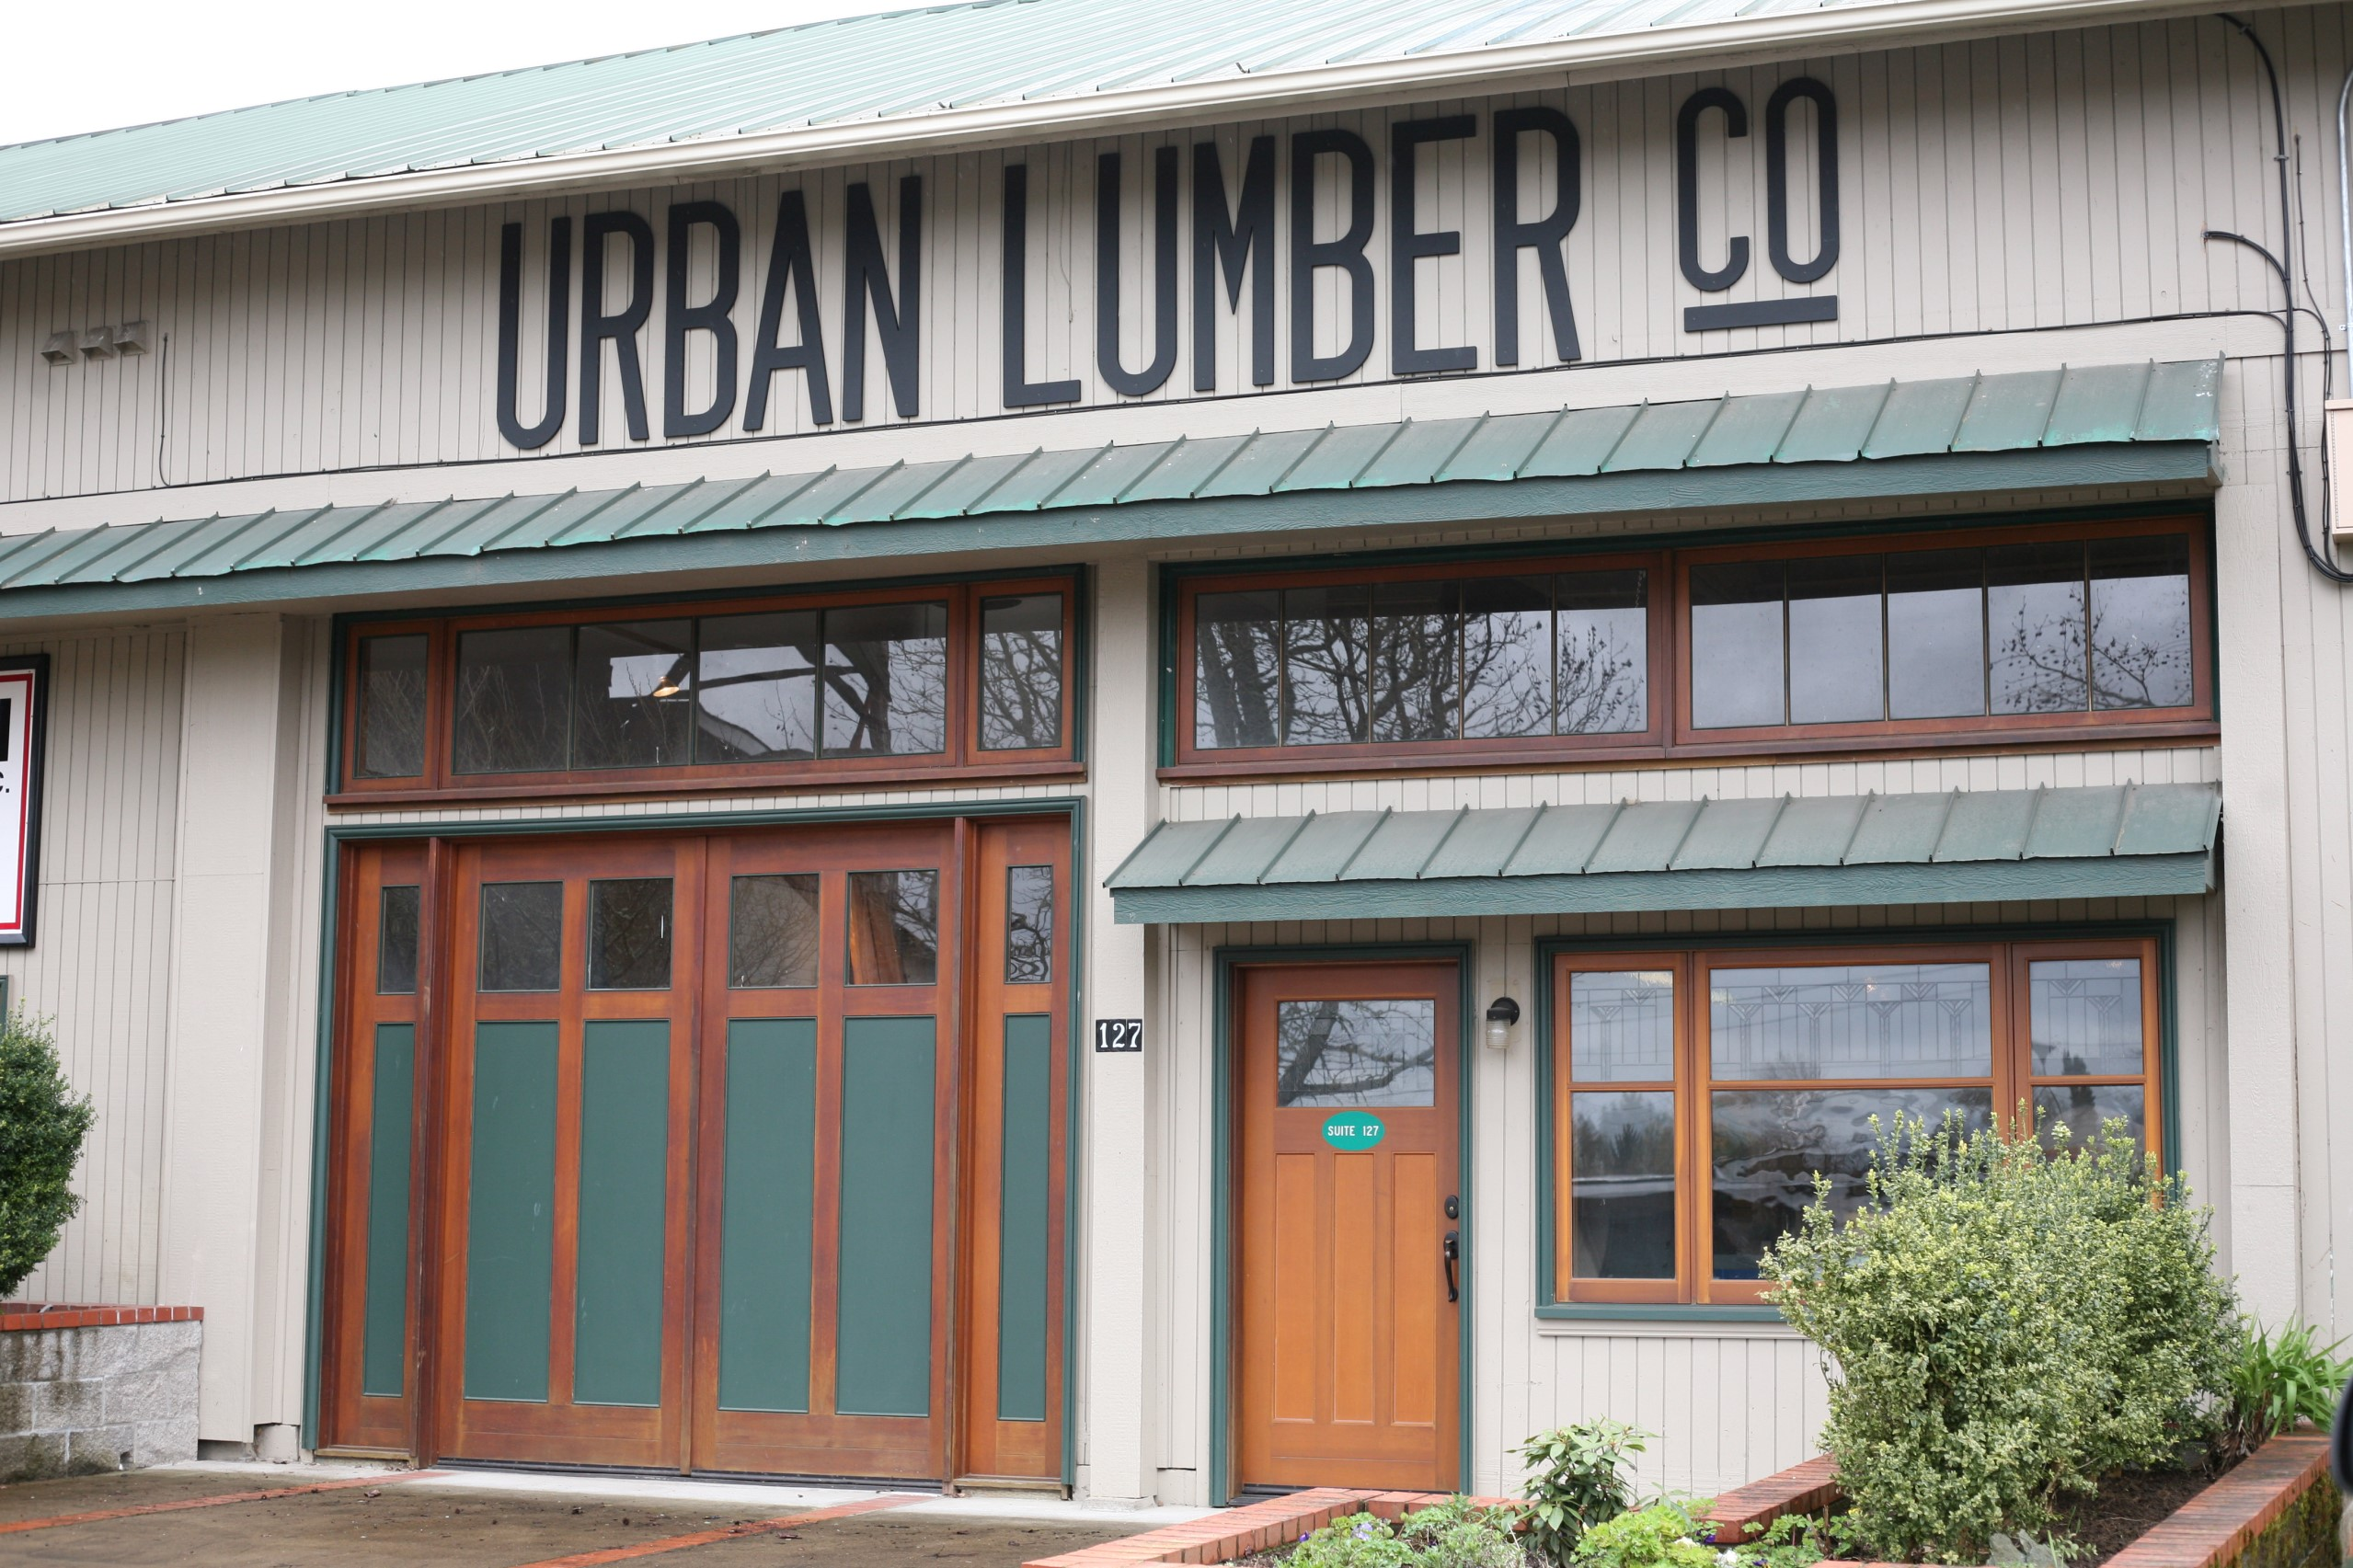 We Had The Pleasure Of Seeing The Urban Lumber Companyu0027s New Location In  Springfield, Oregon The Other Day. I Oohed And Ahhed Over All The Gorgeous  ...